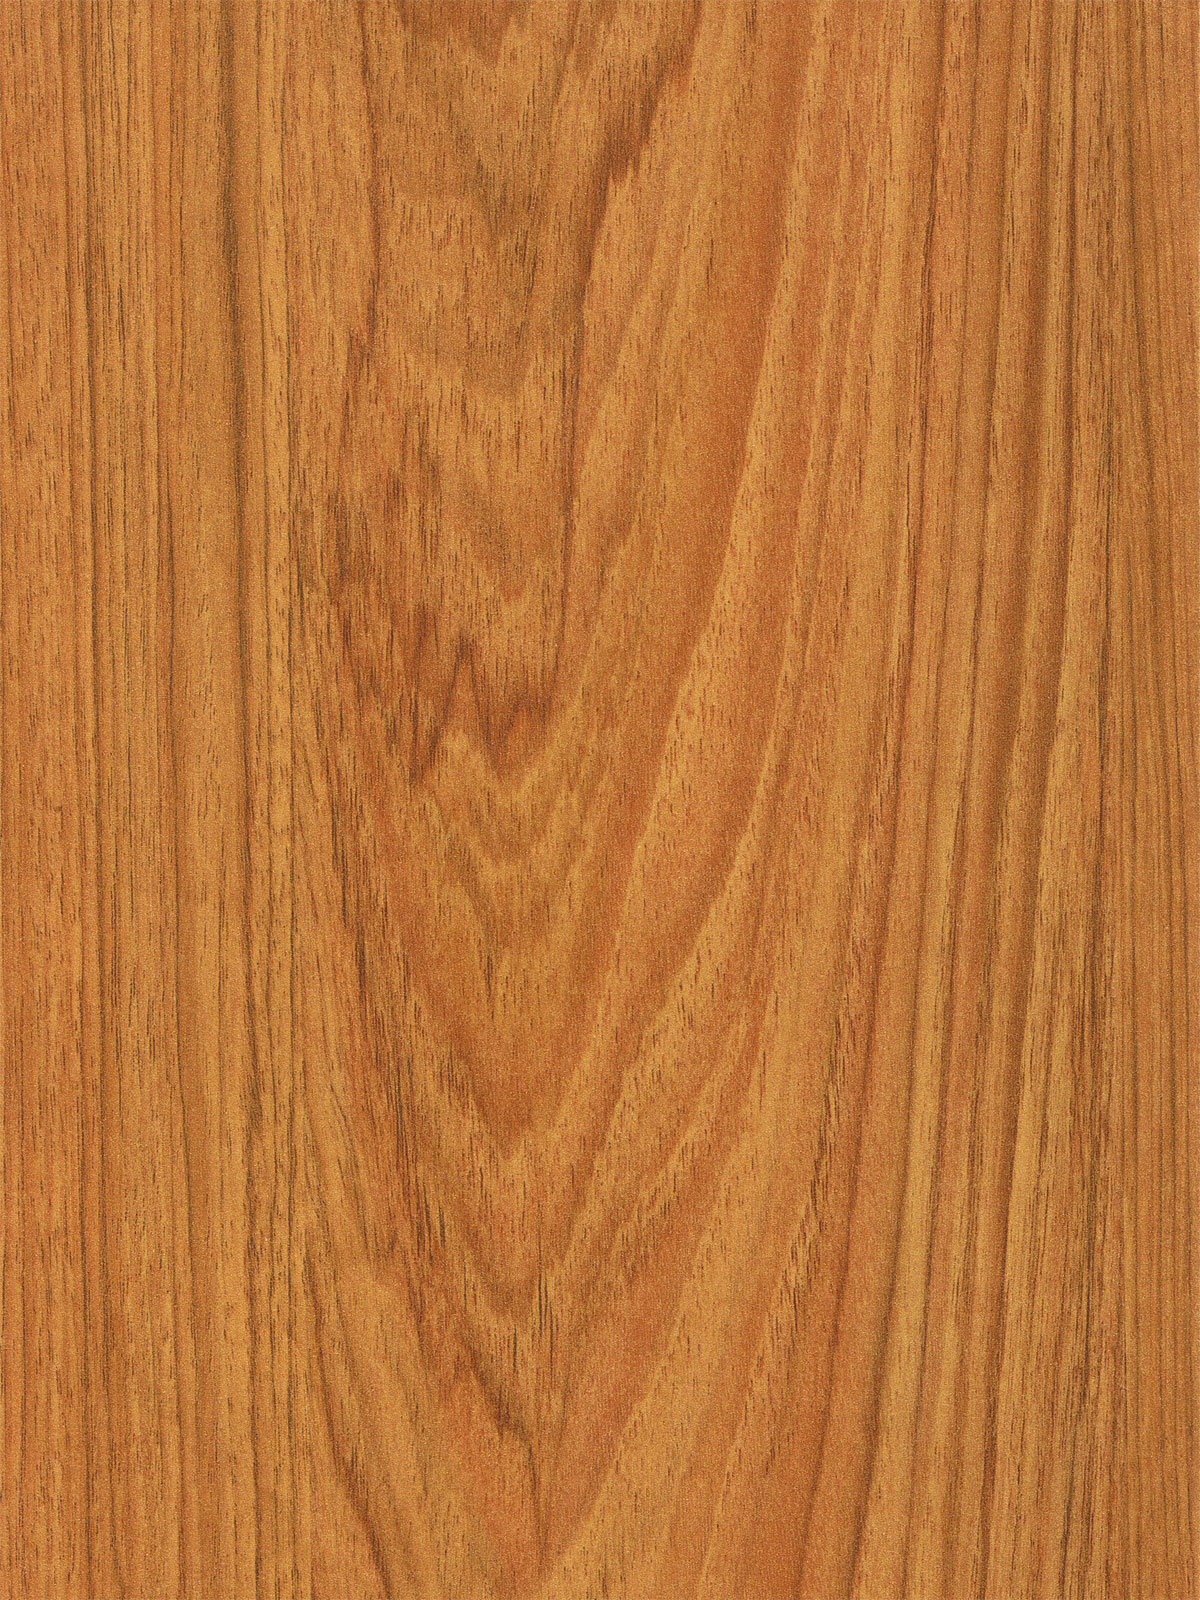 Laminate flooring colors wood floors for Laminate flooring colors